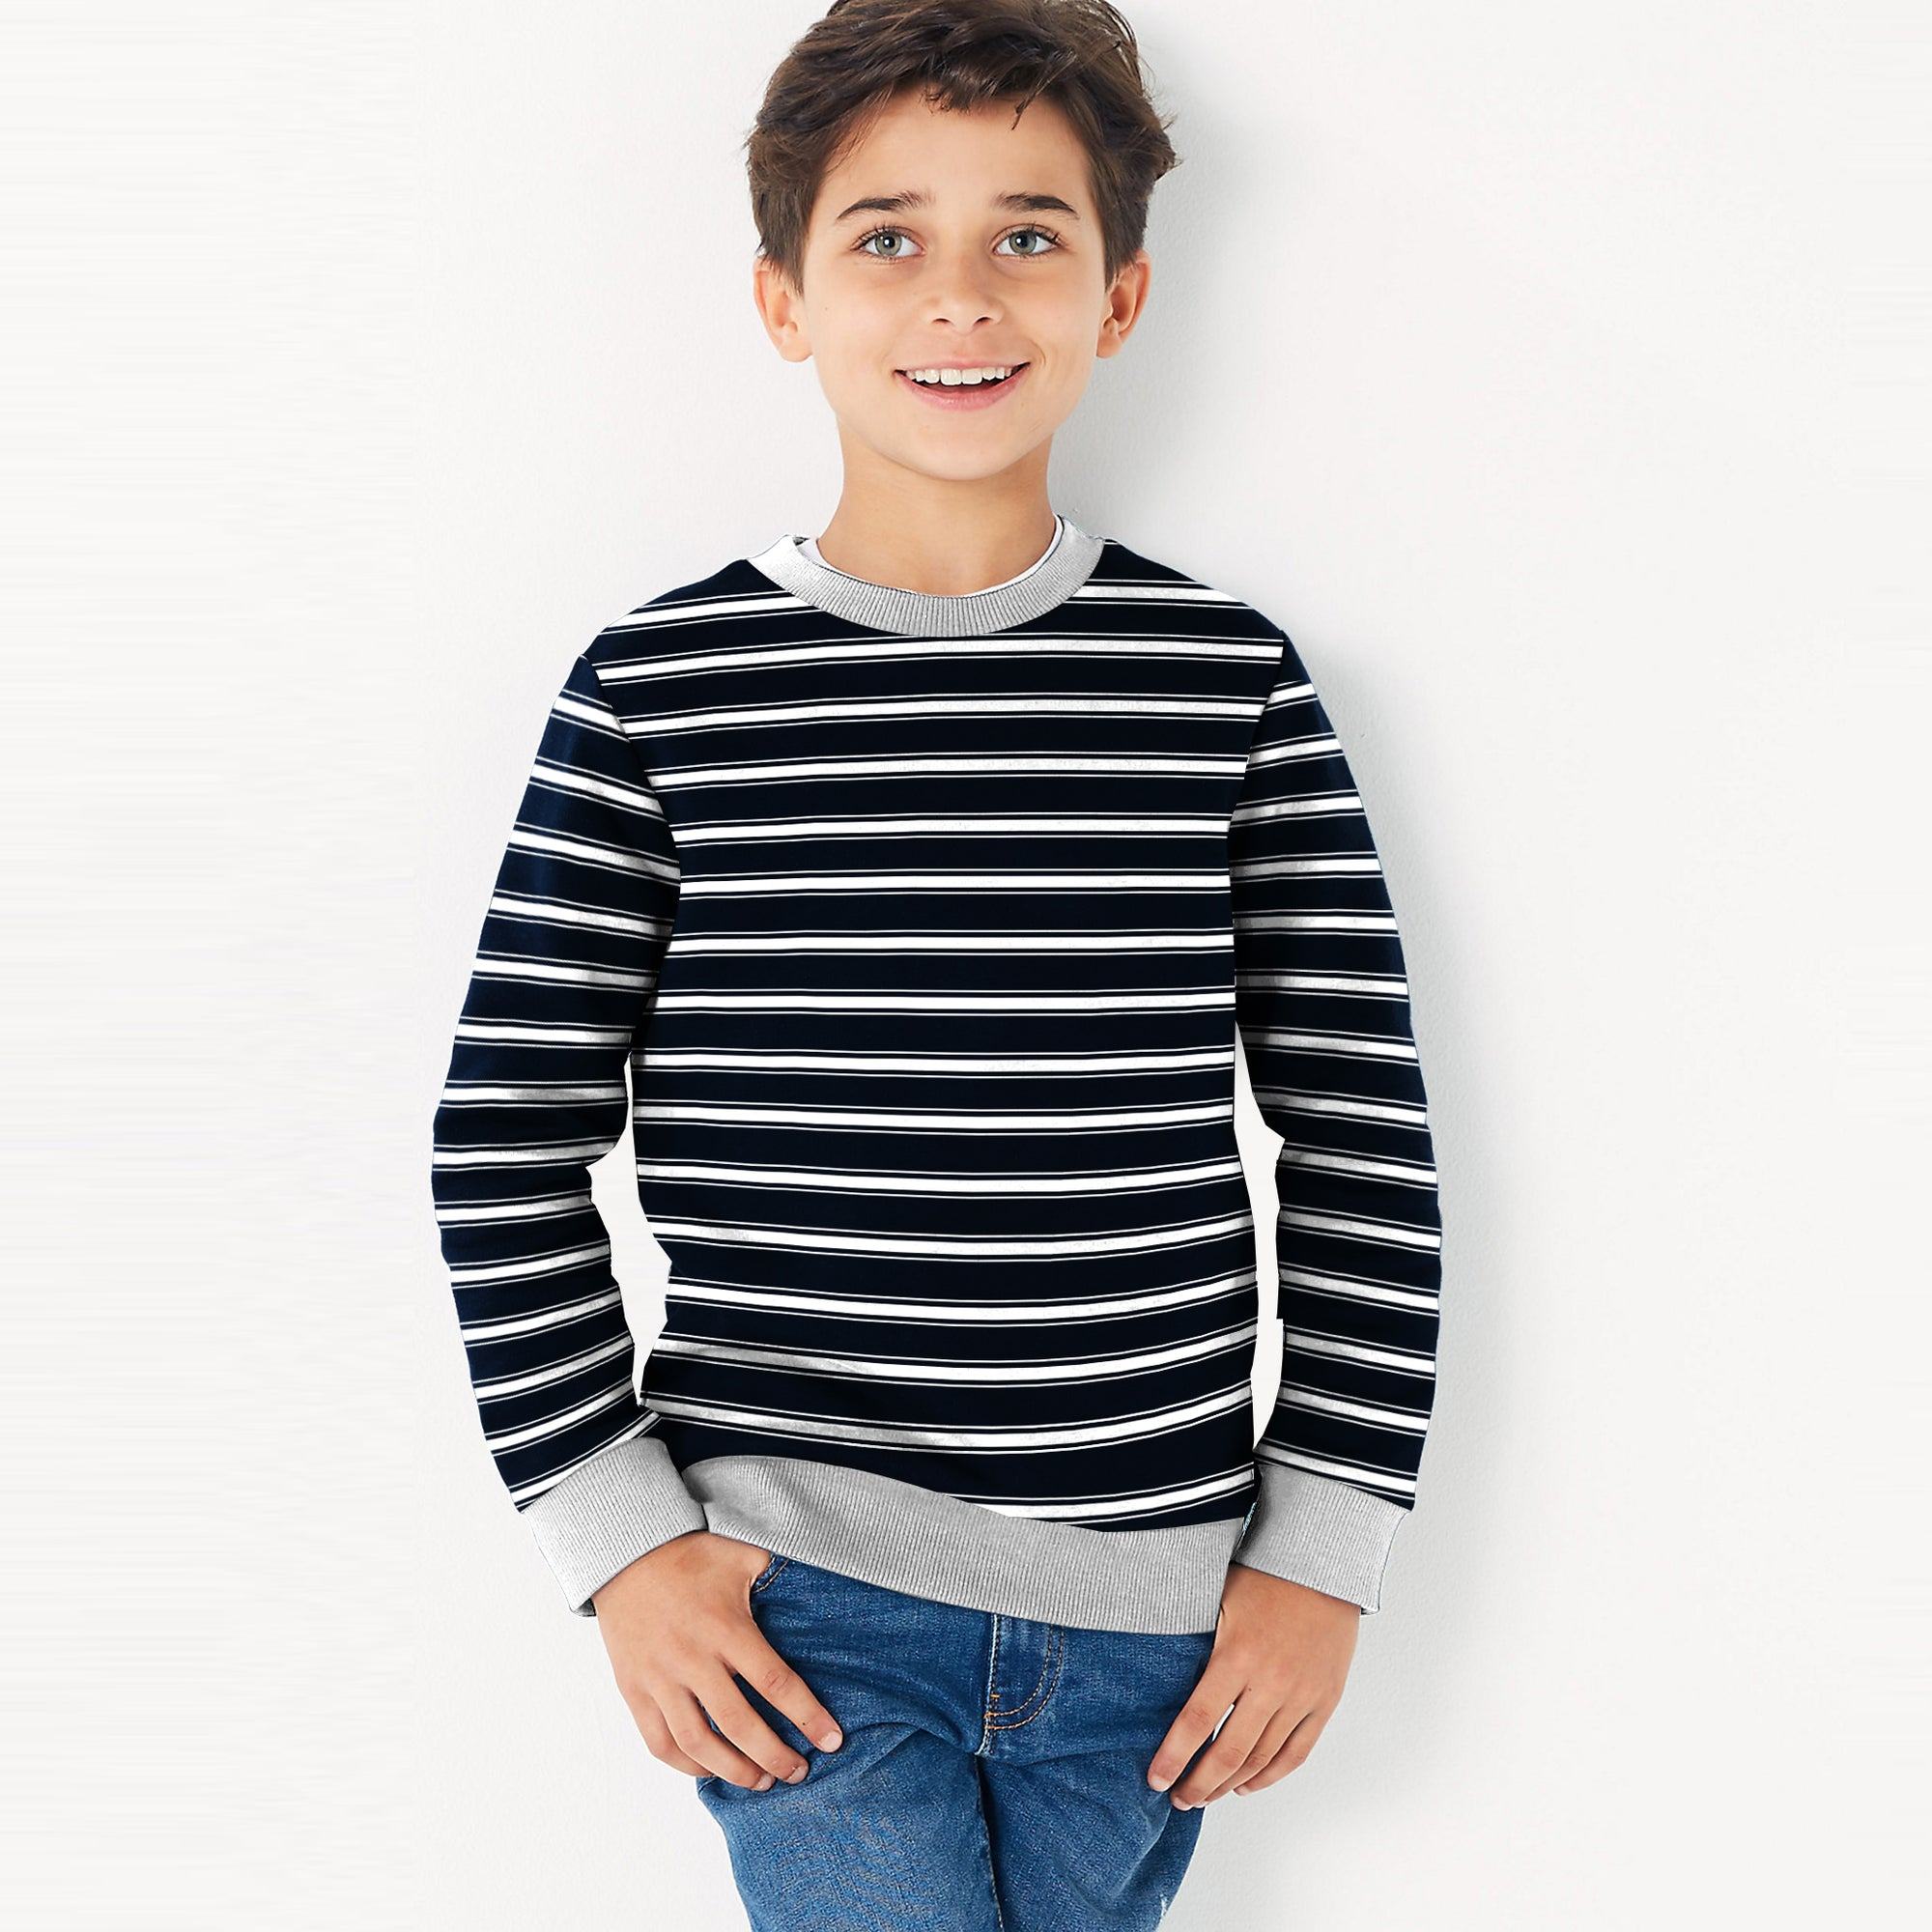 Tommy Hilfiger Terry Fleece Crew Neck Sweatshirt For Kids-Dark Navy With Stripes-SP820